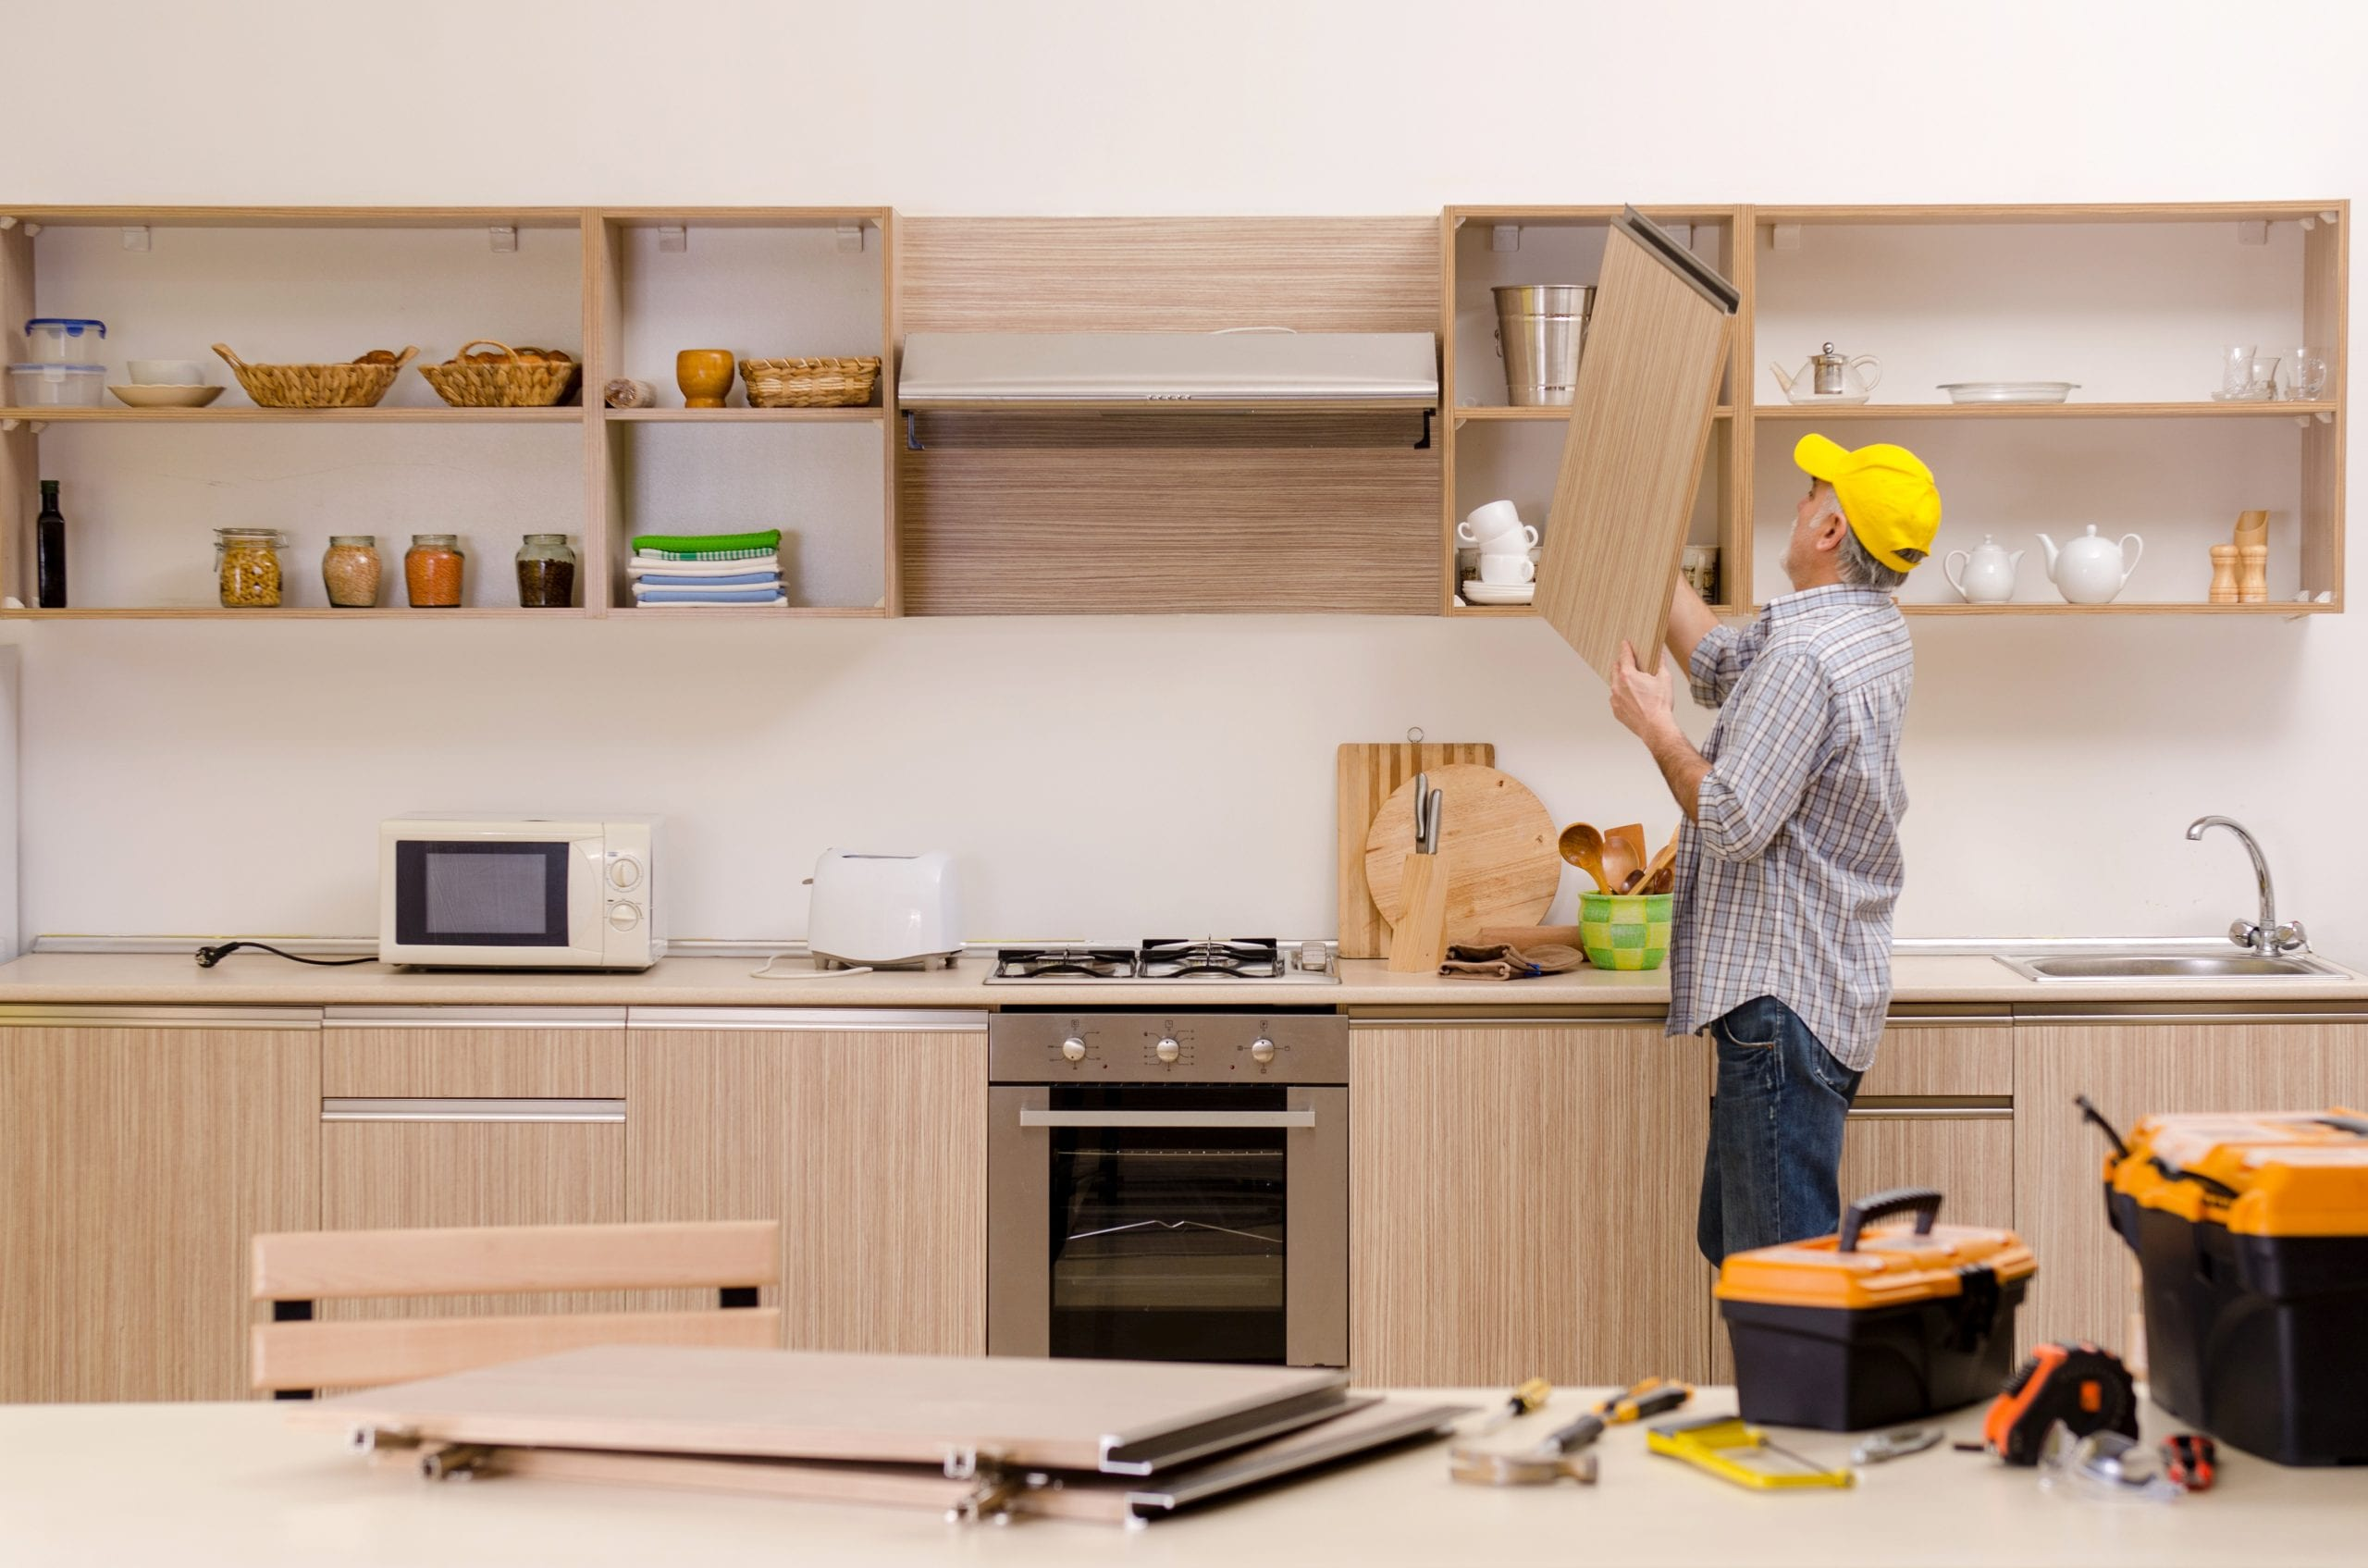 Contractor repair man working on kitchen cabinets